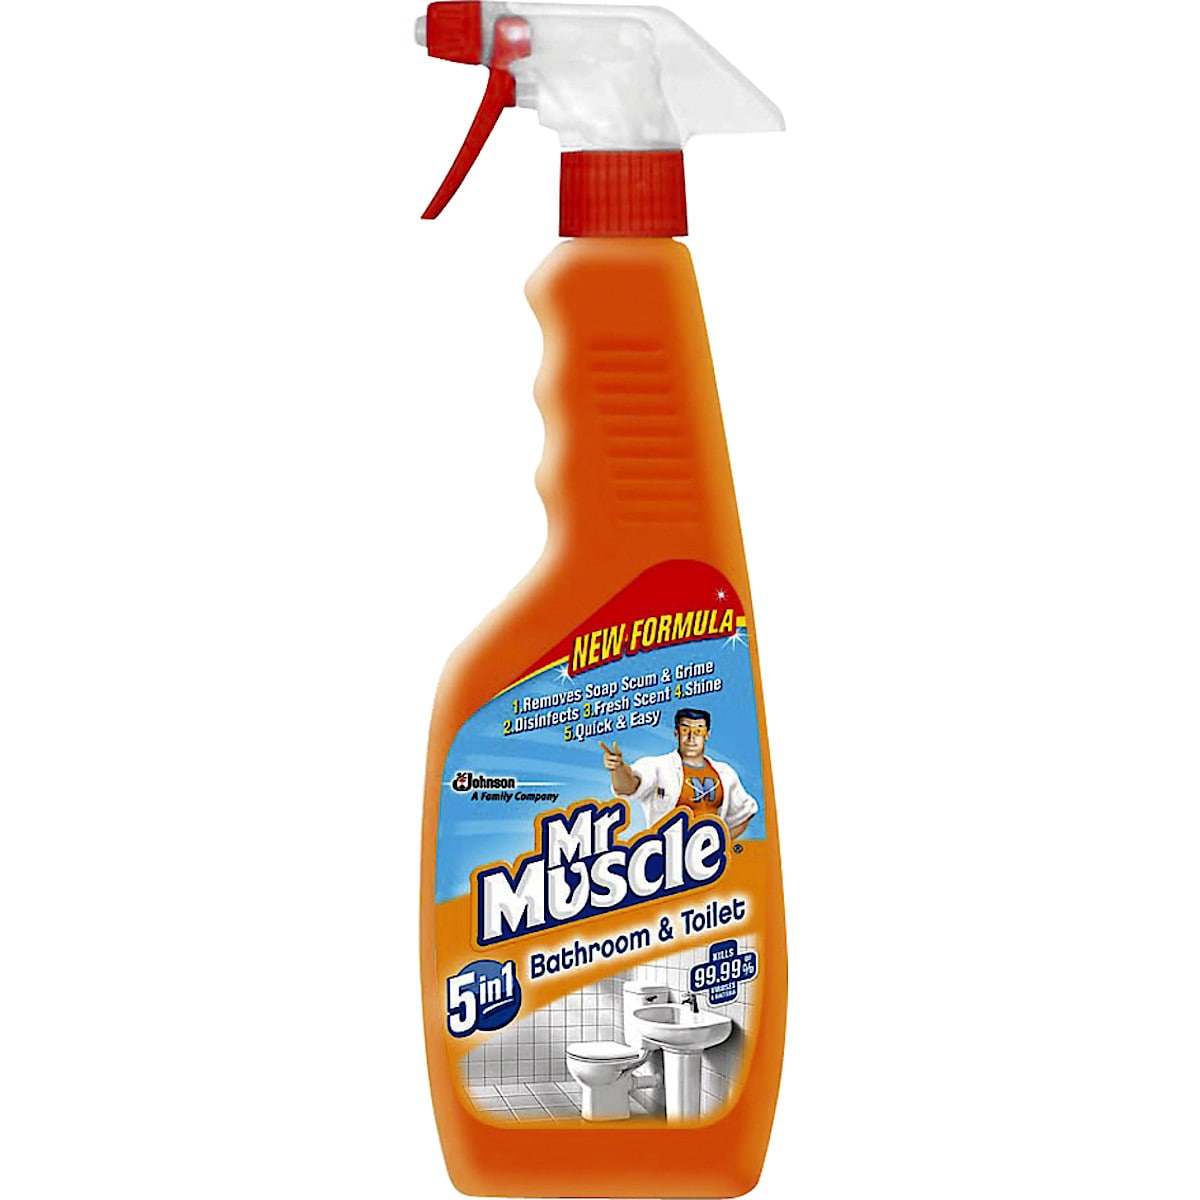 Mr Muscle 5-in-1 Bathroom & Toilet Trigger Spray